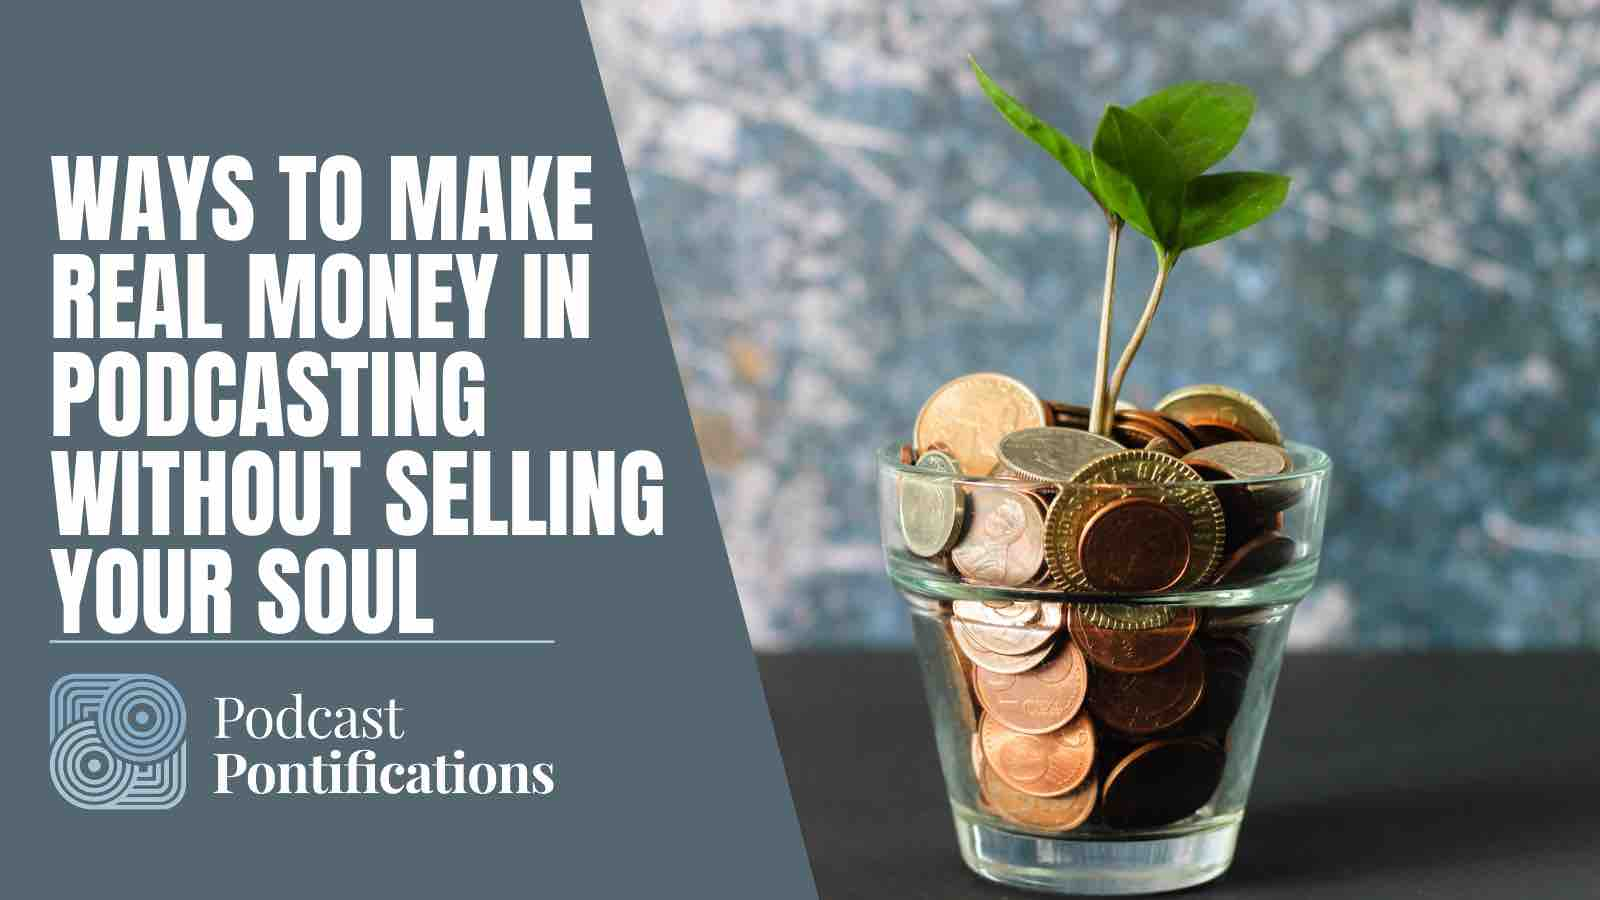 Ways To Make Real Money In Podcasting Without Selling Your Soul